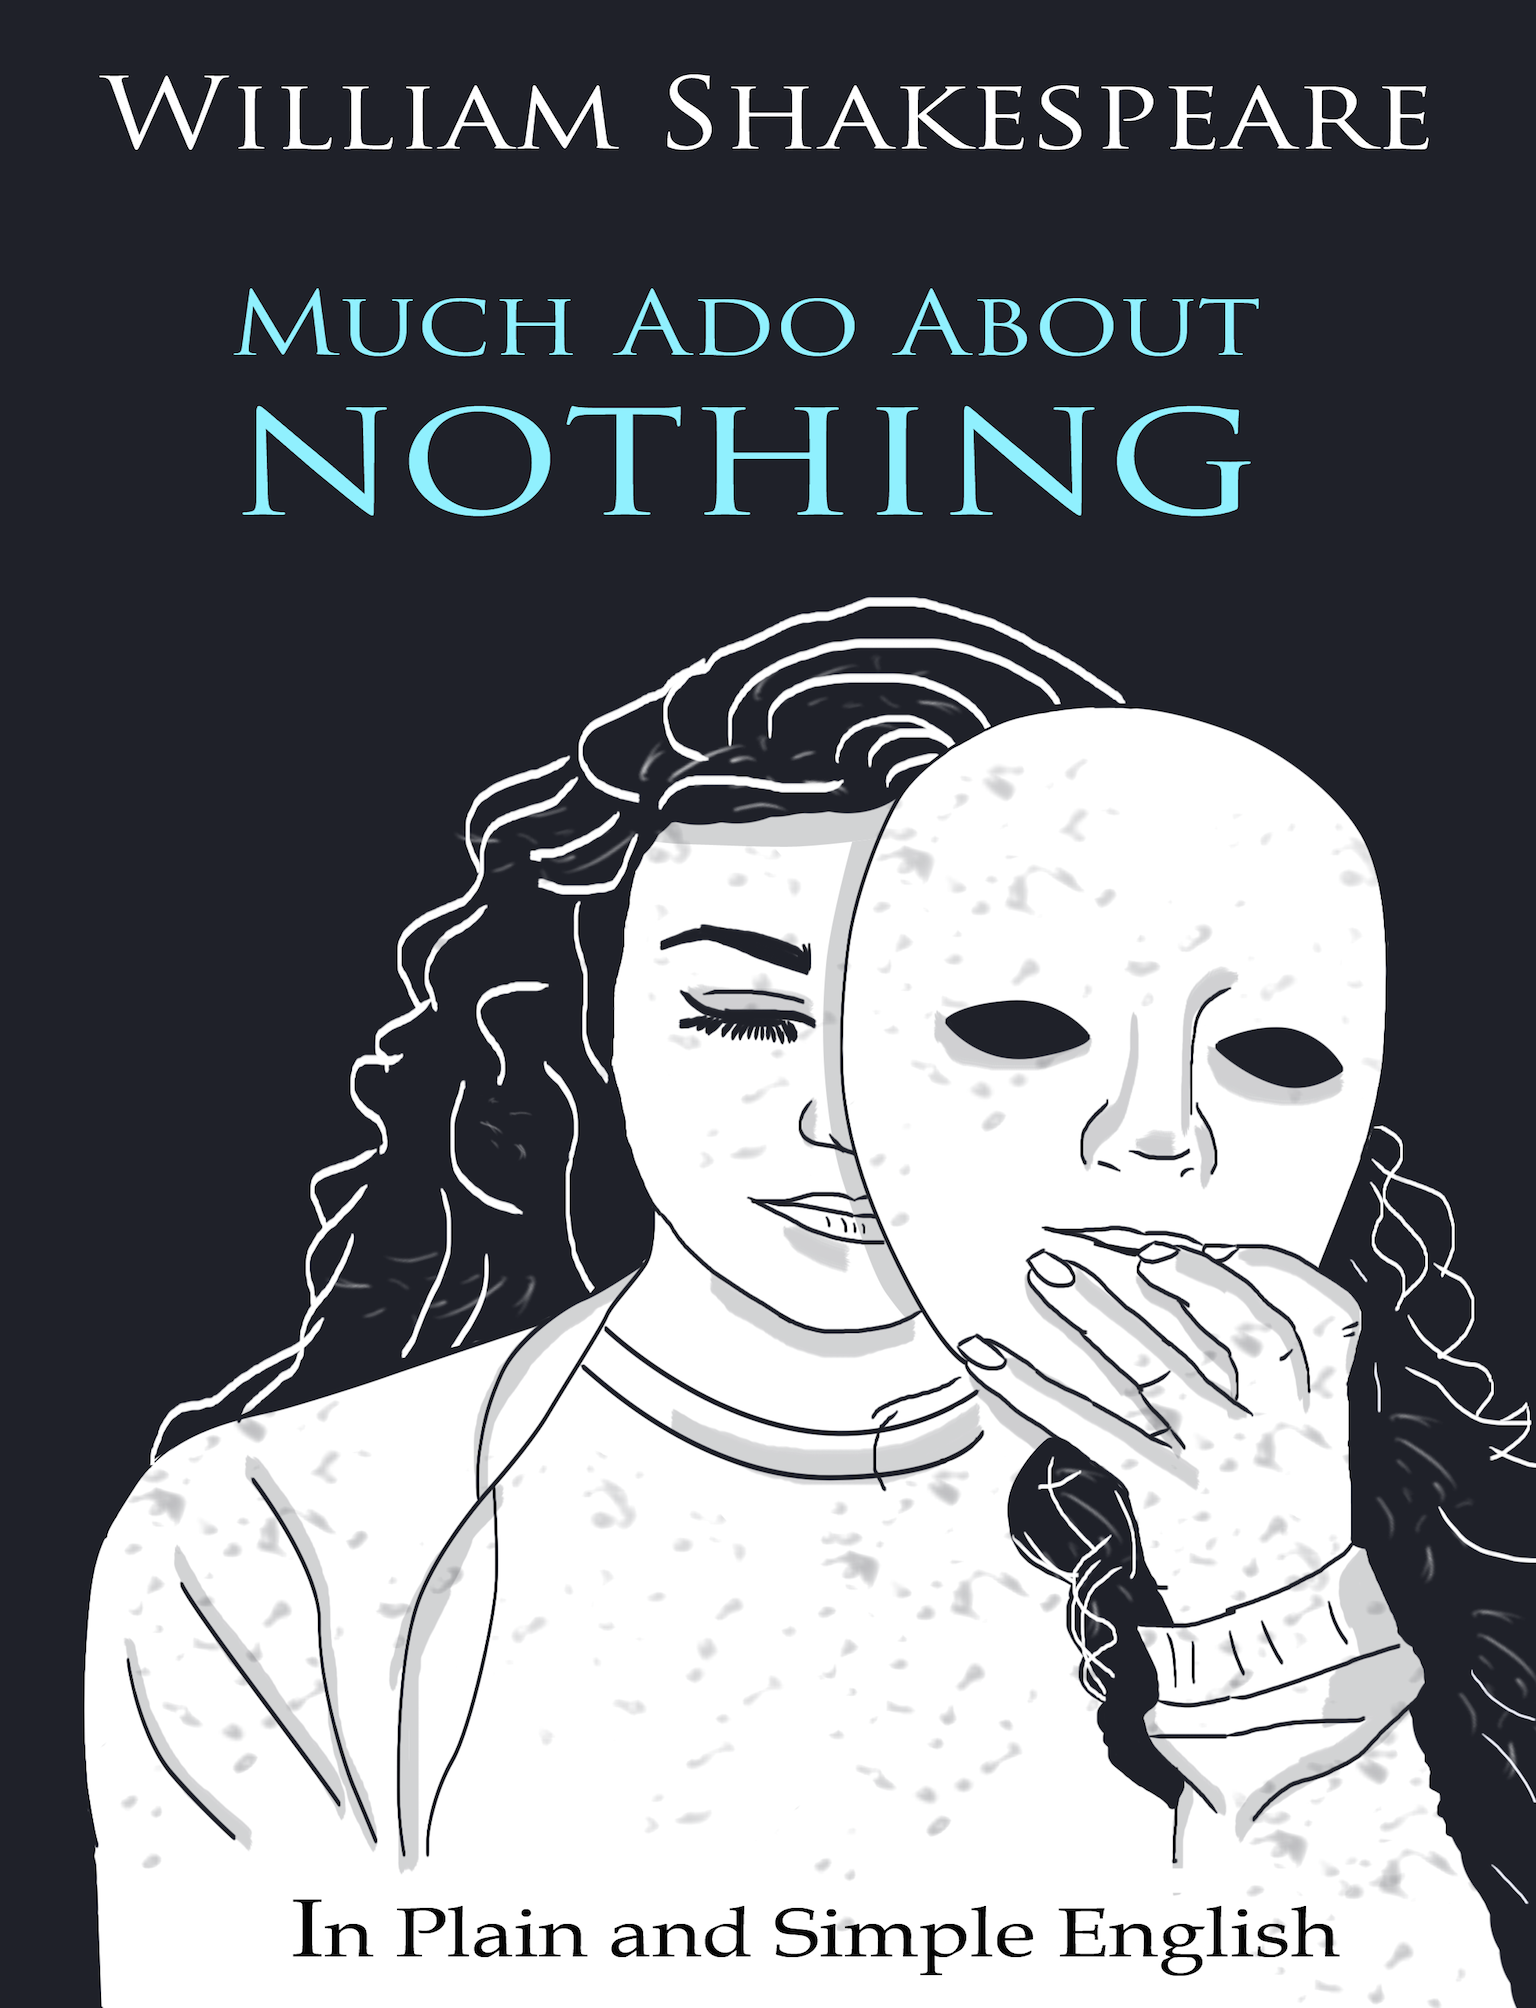 a marxist study of much ado The study of marxism falls under three main headings, corresponding broadly to philosophy, social history and economics - dialectical materialism, historical materialism and marxist economics.